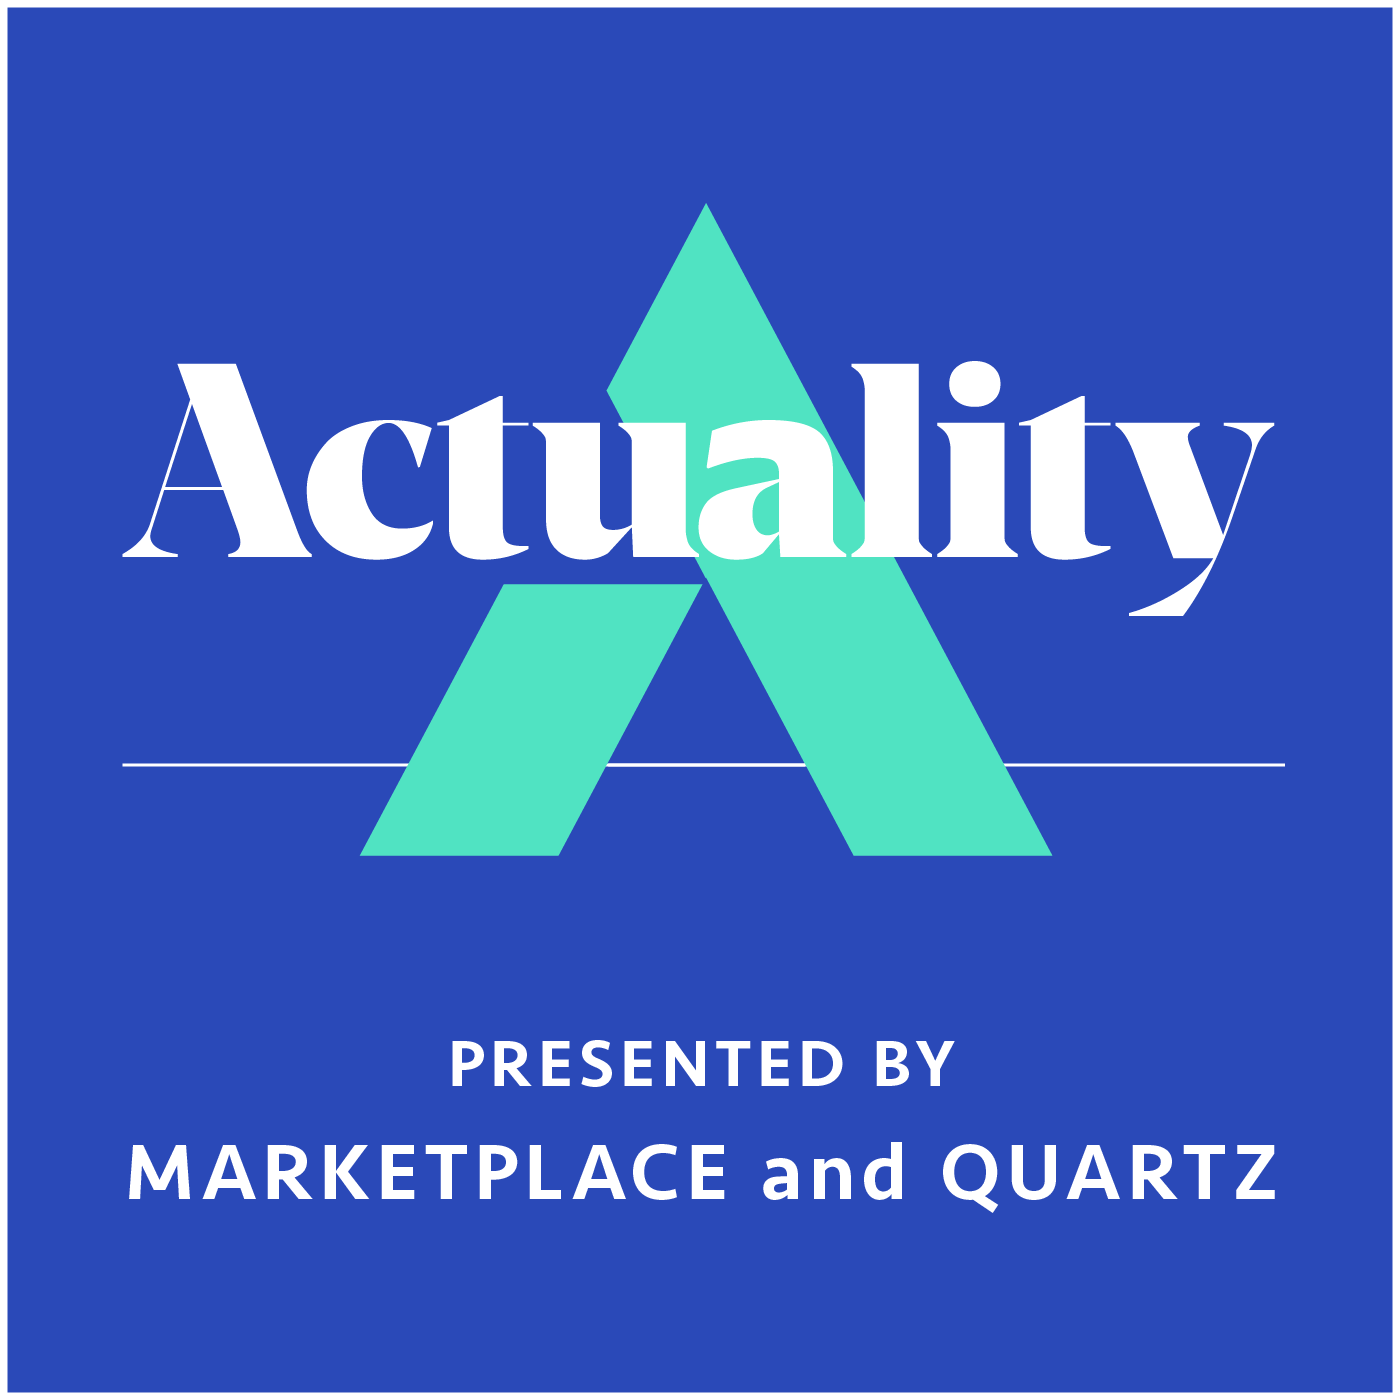 Actuality, by Marketplace and Quartz